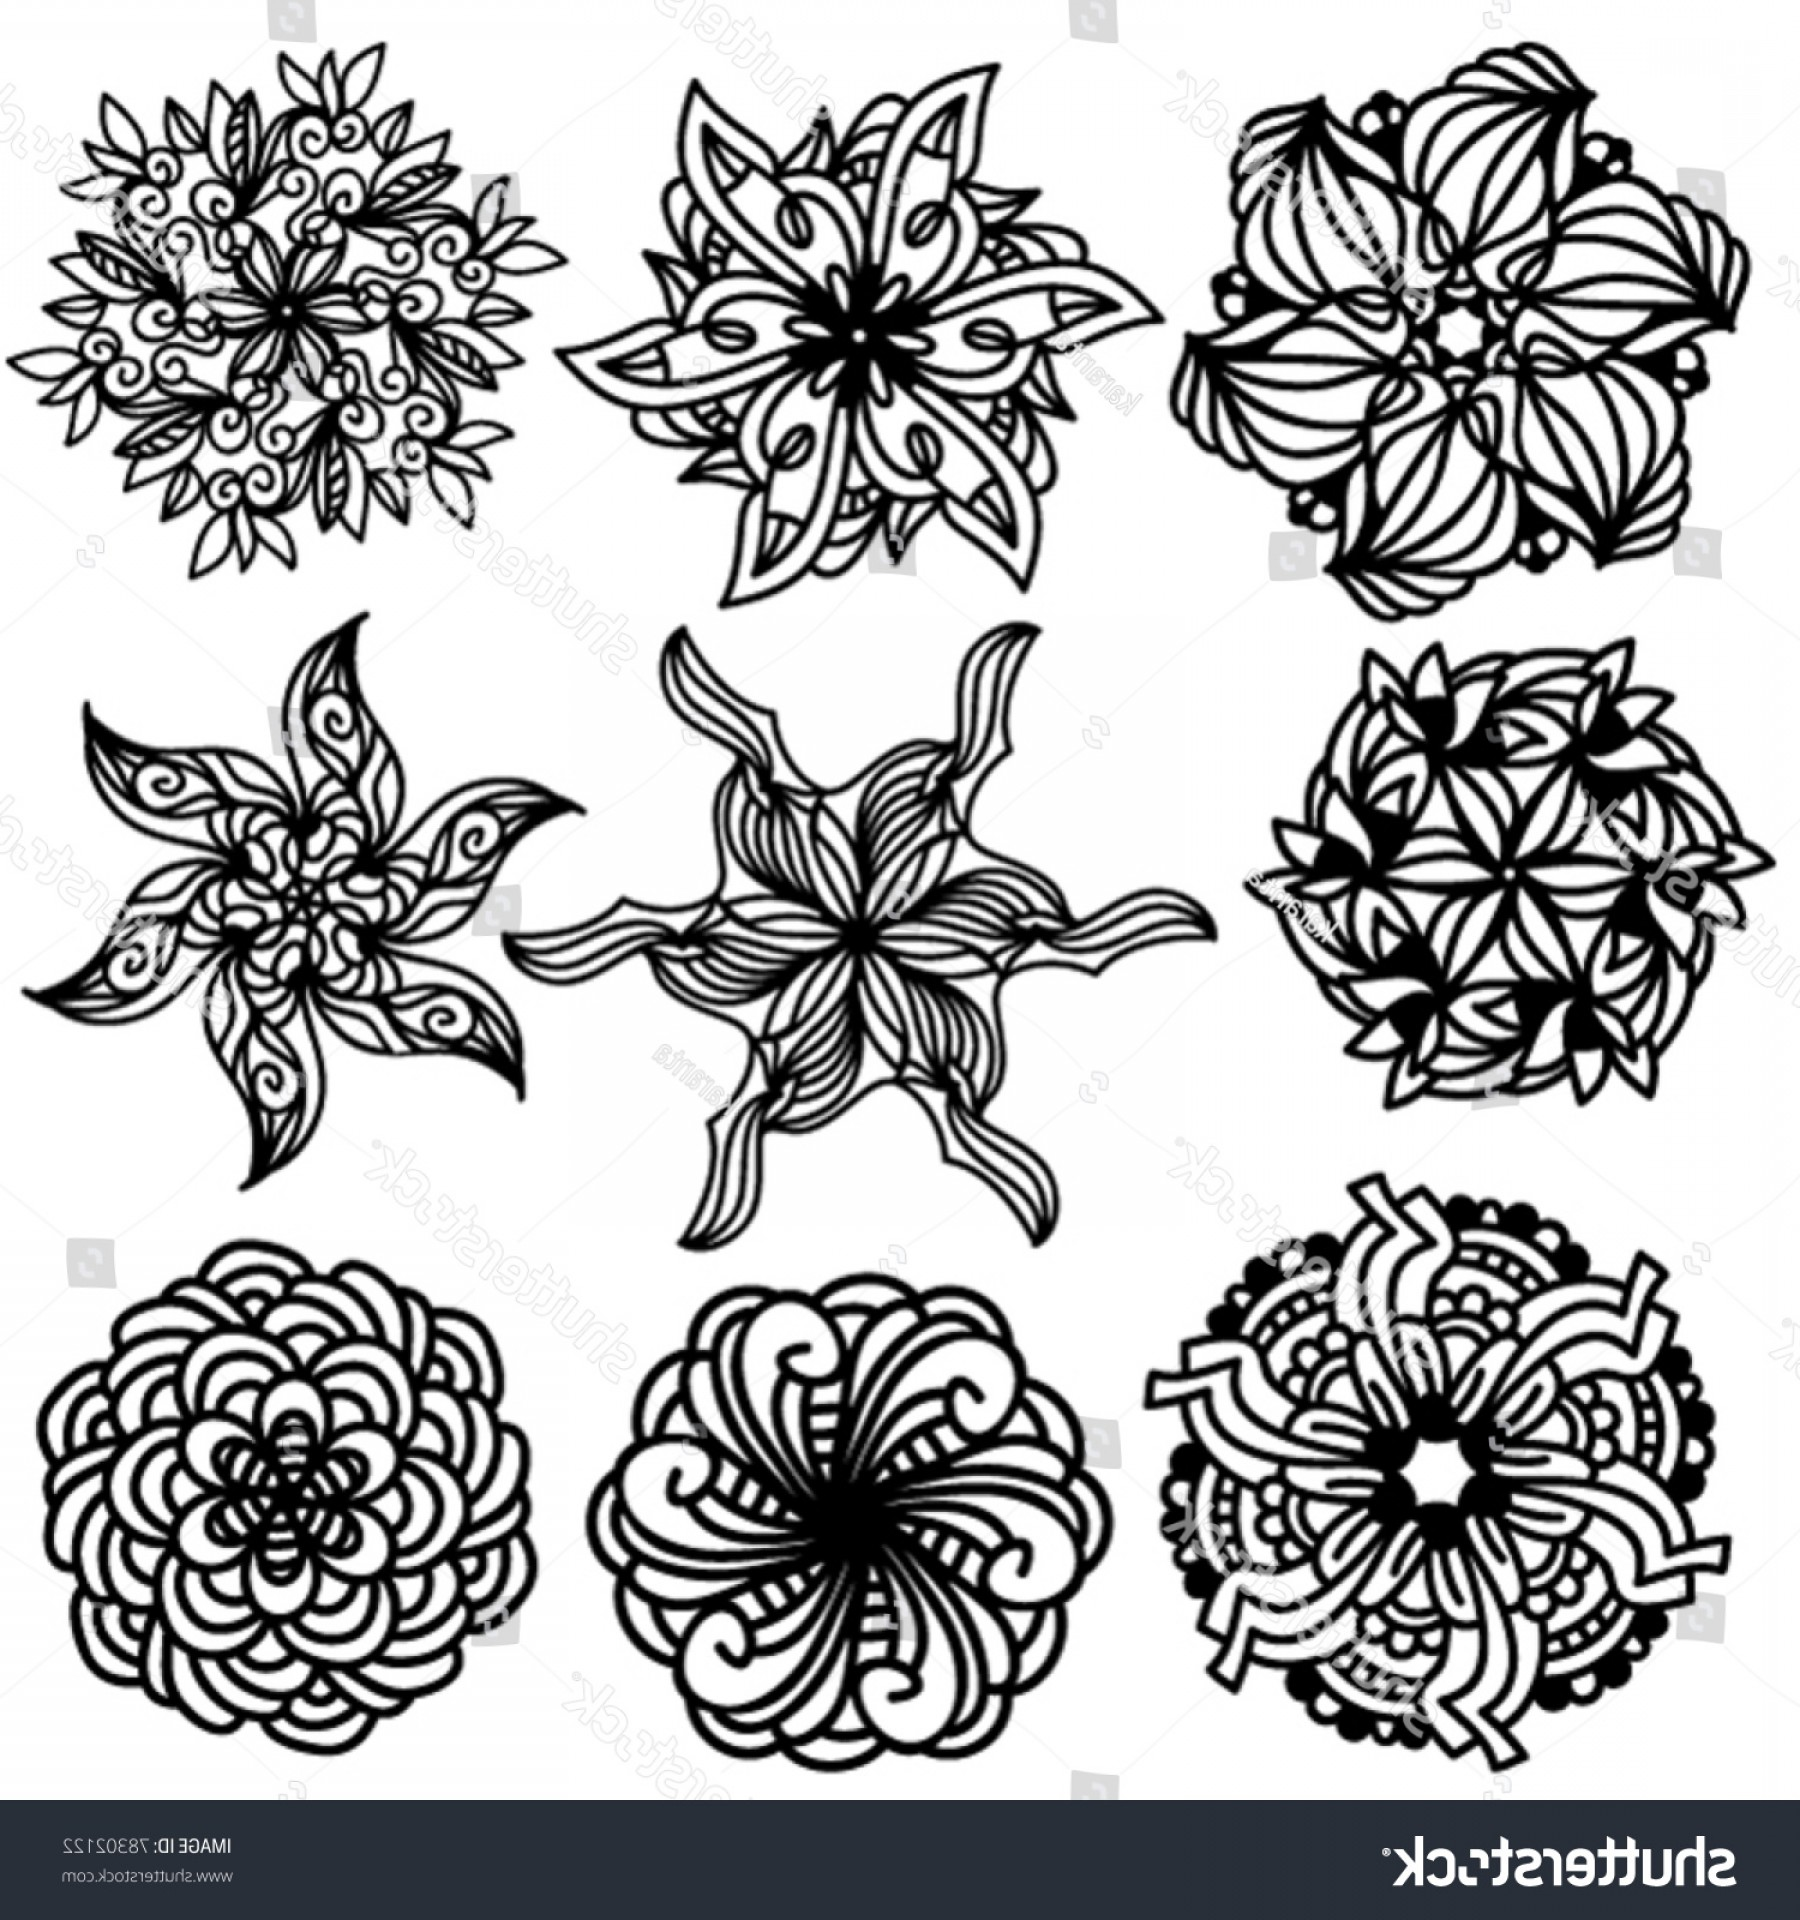 Vector Ornament Sets: Black Vector Ornament Collection Over White